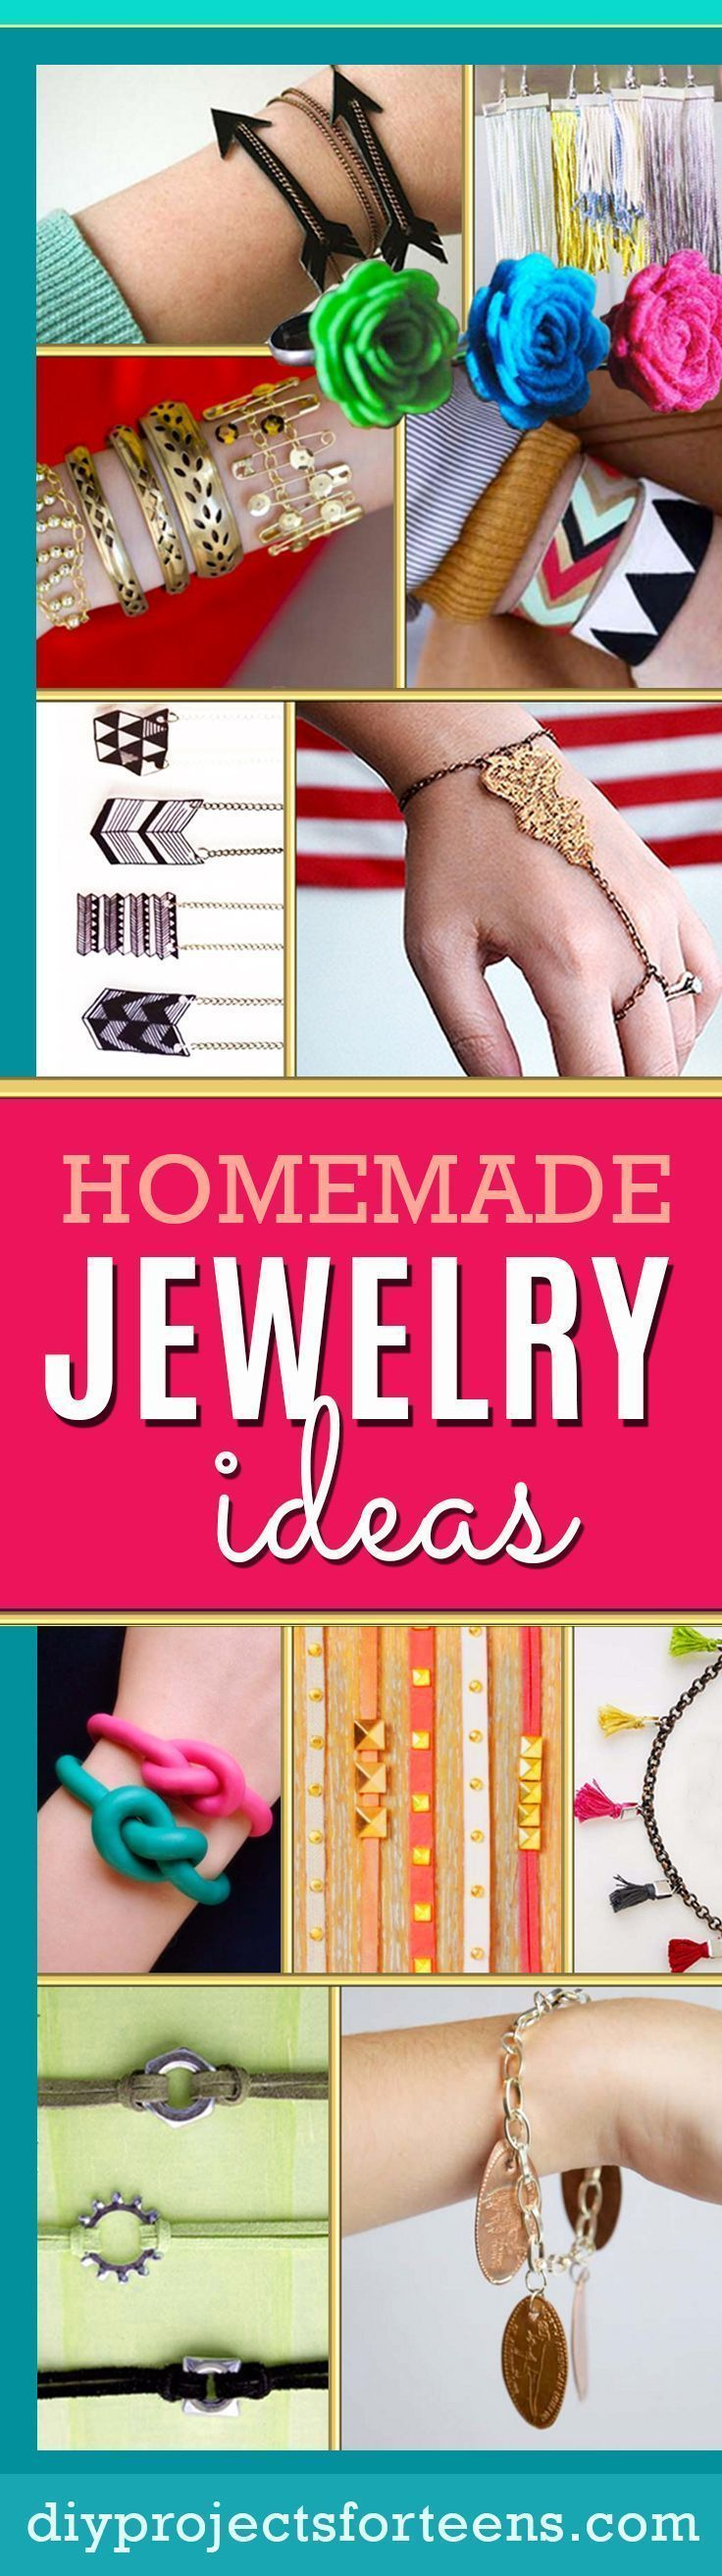 Cool DIY Jewelry Ideas | DIY Bracelets, Necklaces, Earrings and Fun Jewelry Crafts for Adults and Teens | Tutorials and Step by Step Instructions http://diyprojectsforteens.com/fun-diy-jewelry-ideas-for-teens/